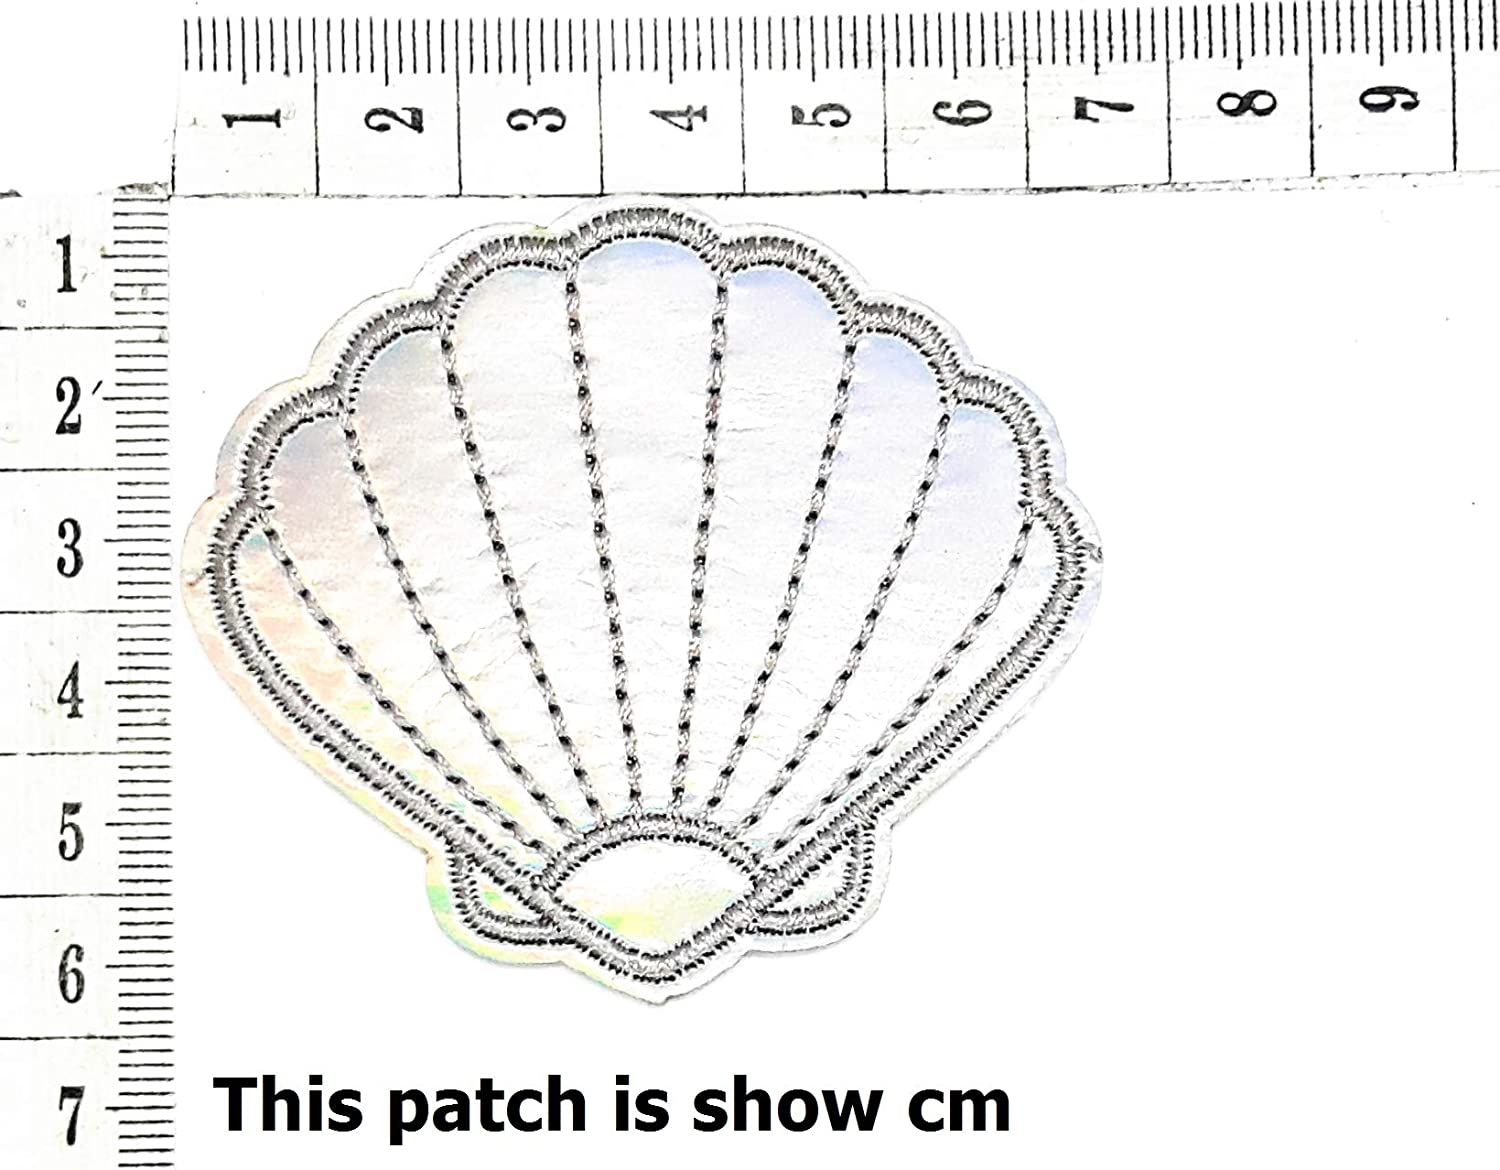 Shell Mermaid Seashell Pearl Summer Beach Ocean Shine Sparkling Cartoon Chidren Kids Embroidren Iron Patch/Logo Sew On Patch Clothes Bag T-Shirt Jeans Biker Badge Applique Devil Artwork